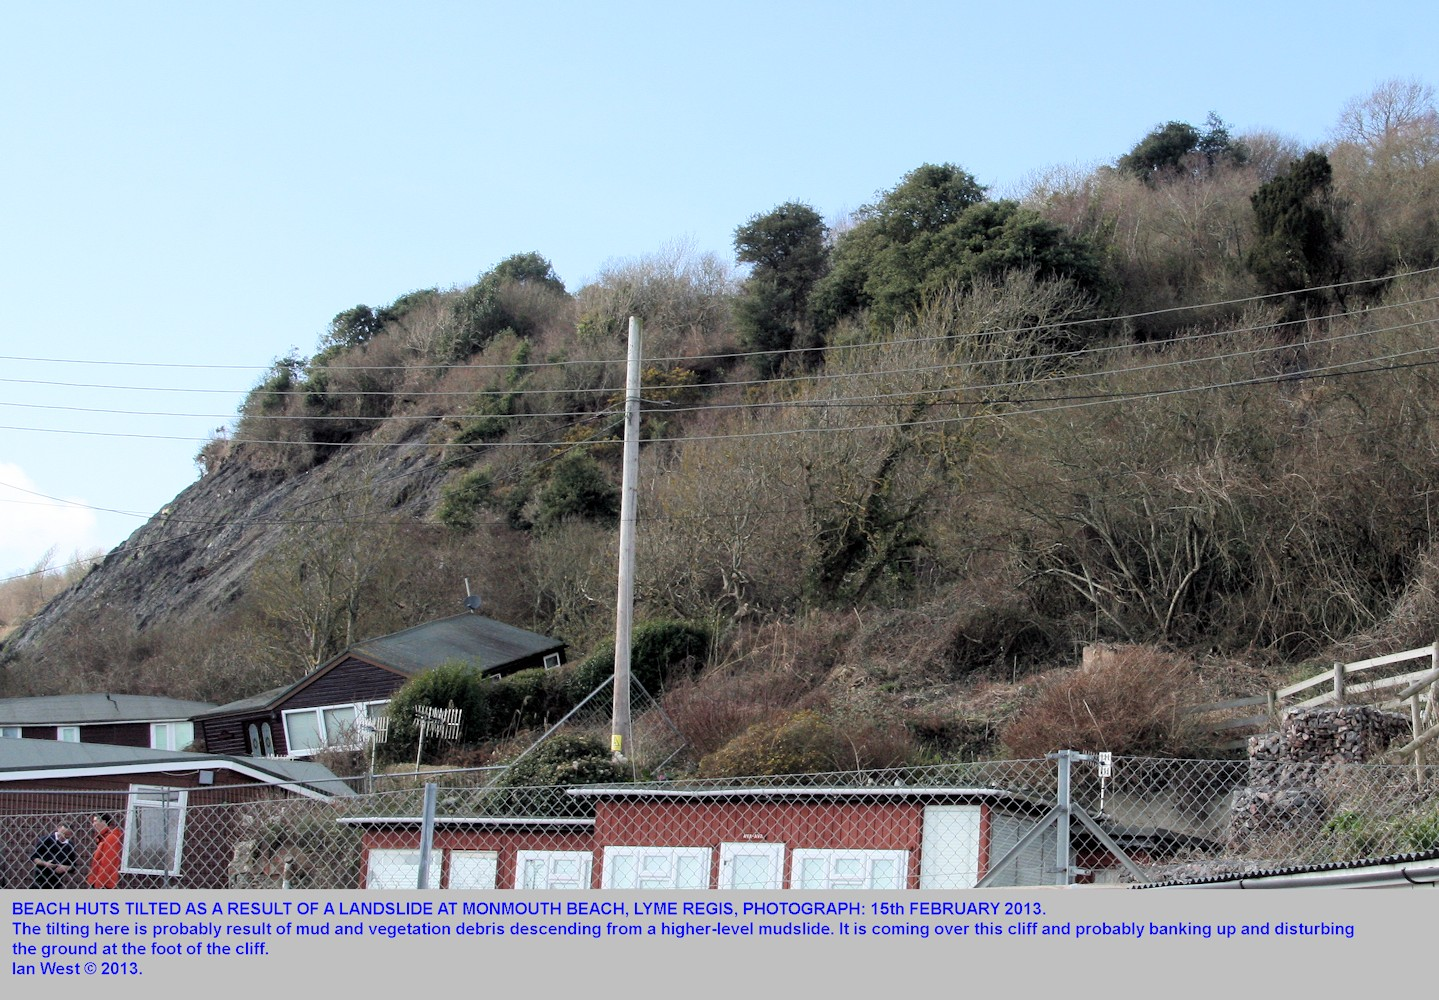 A tilted beach chalet at Monmouth Beach, Lyme Regis, Dorset, 15th February 2013